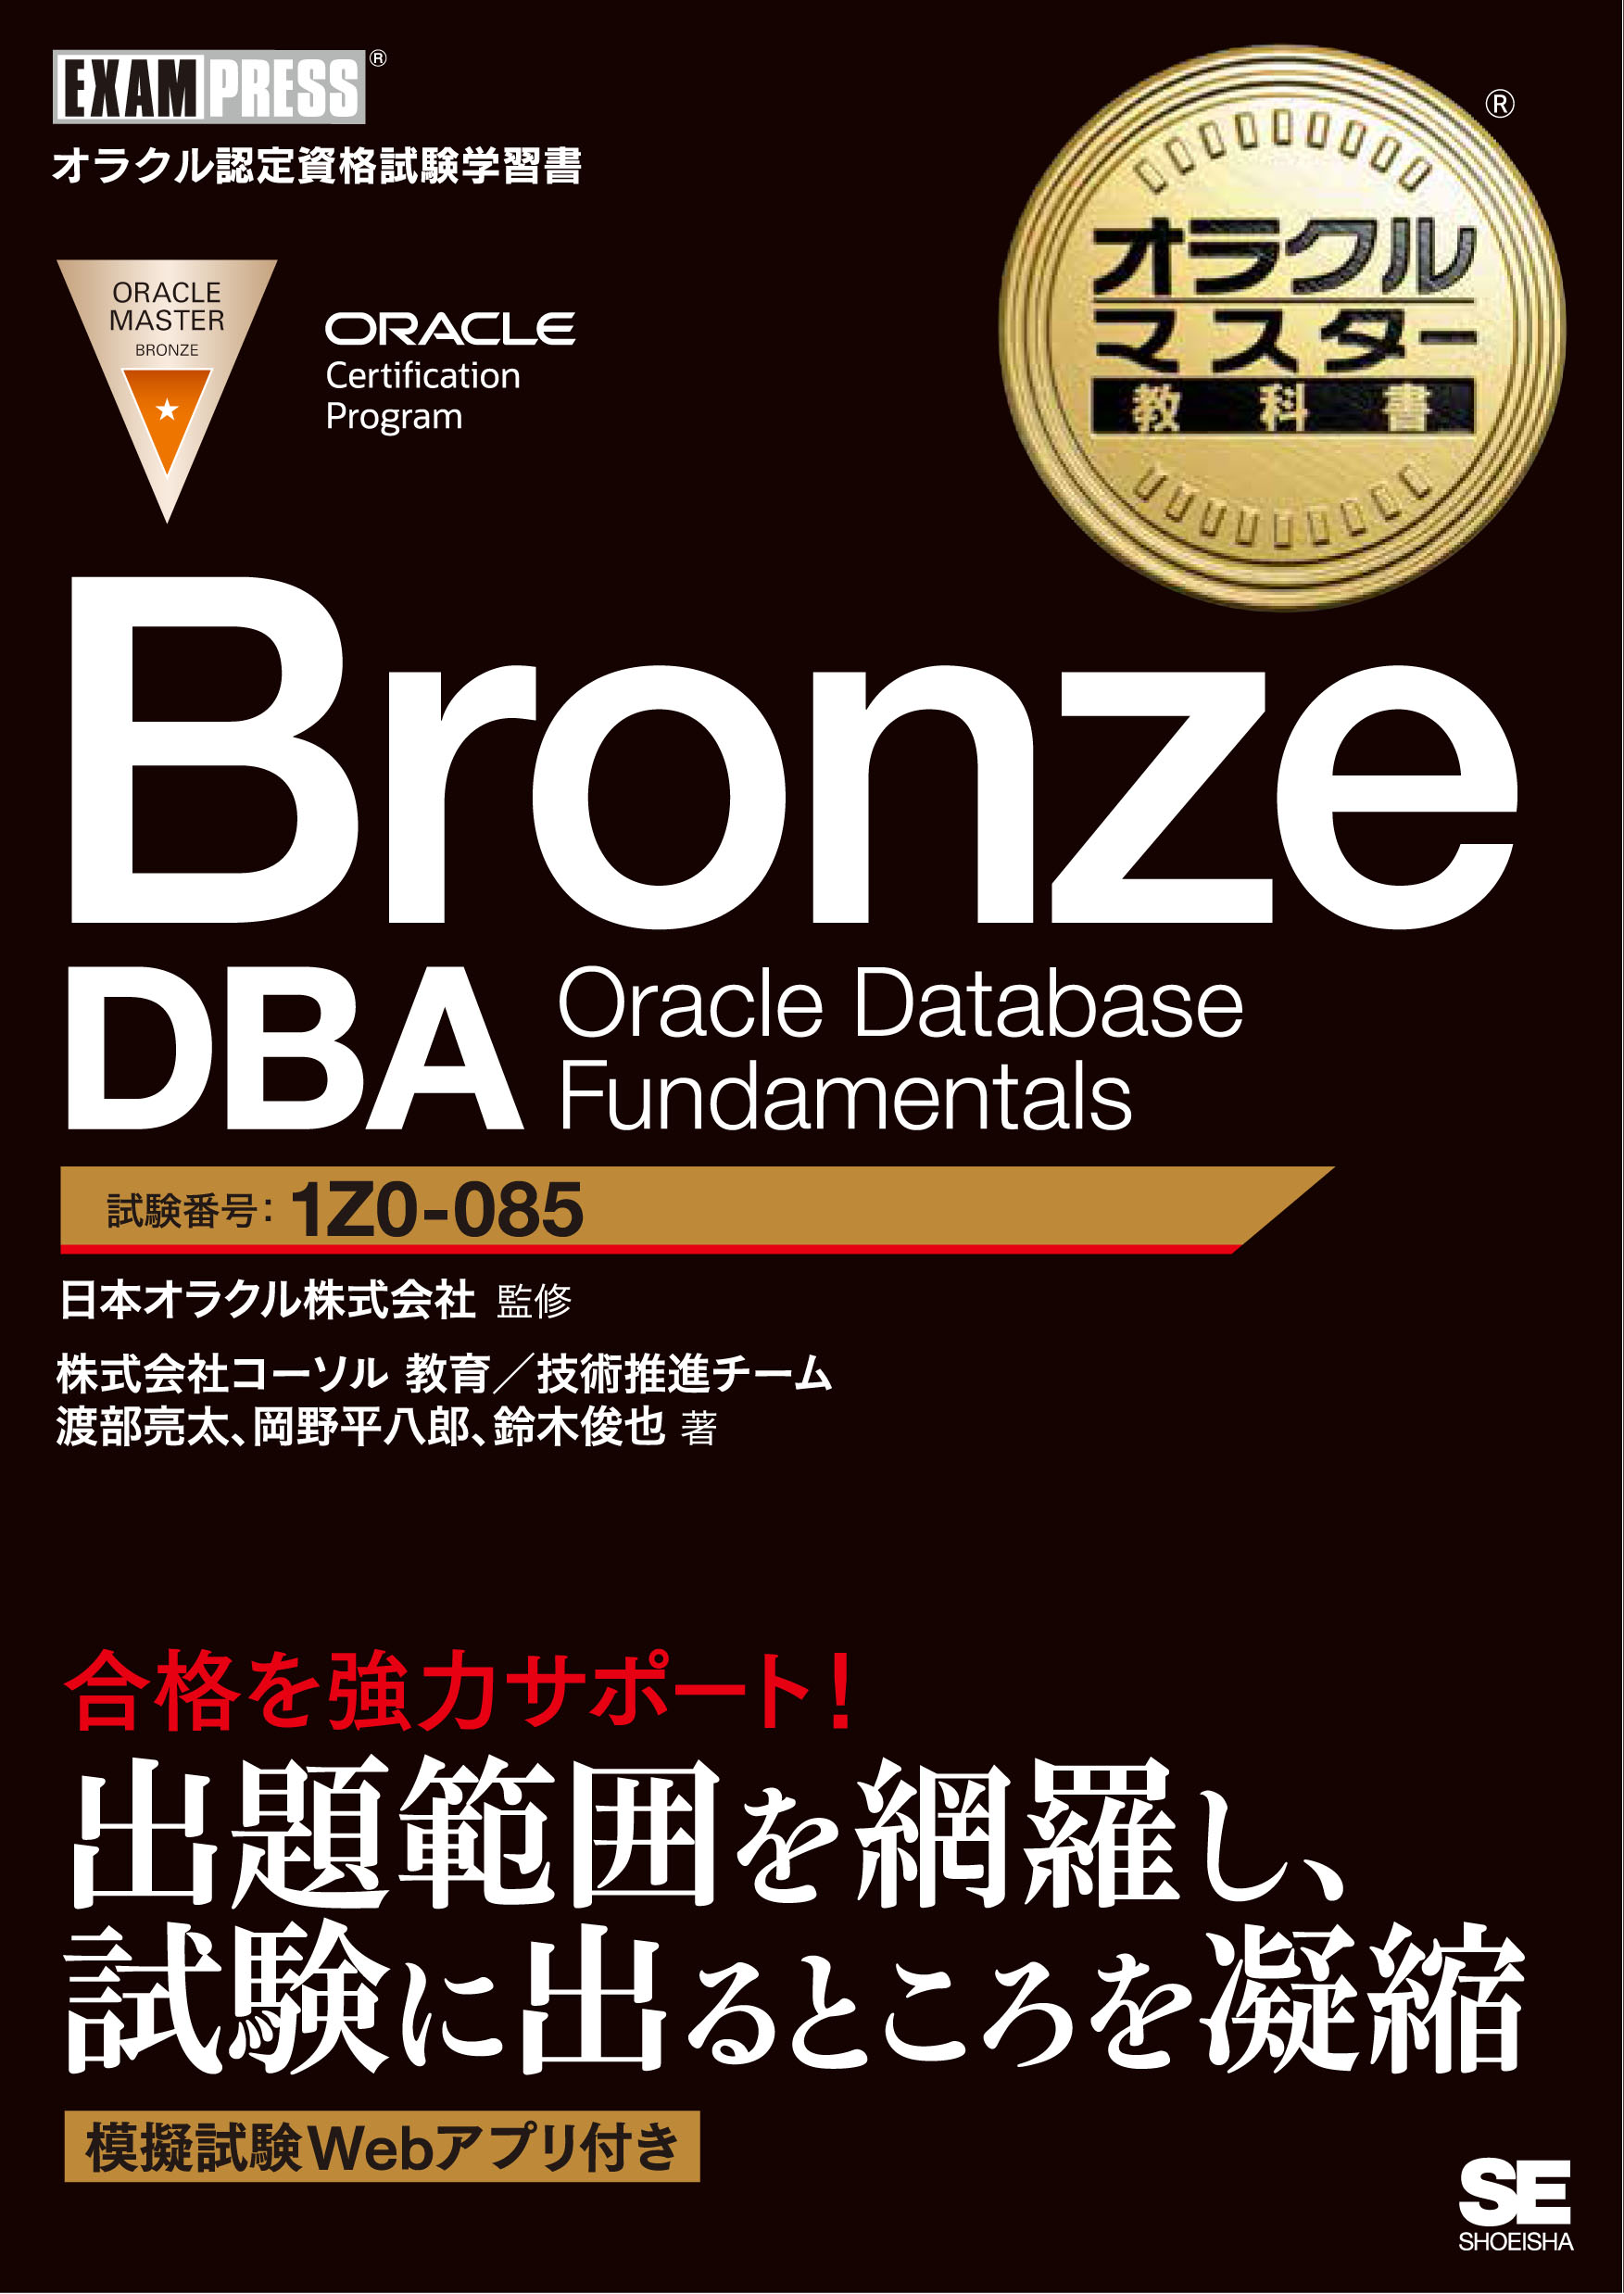 ORACLE MASTER Bronze DBA 2019黒本を執筆しました